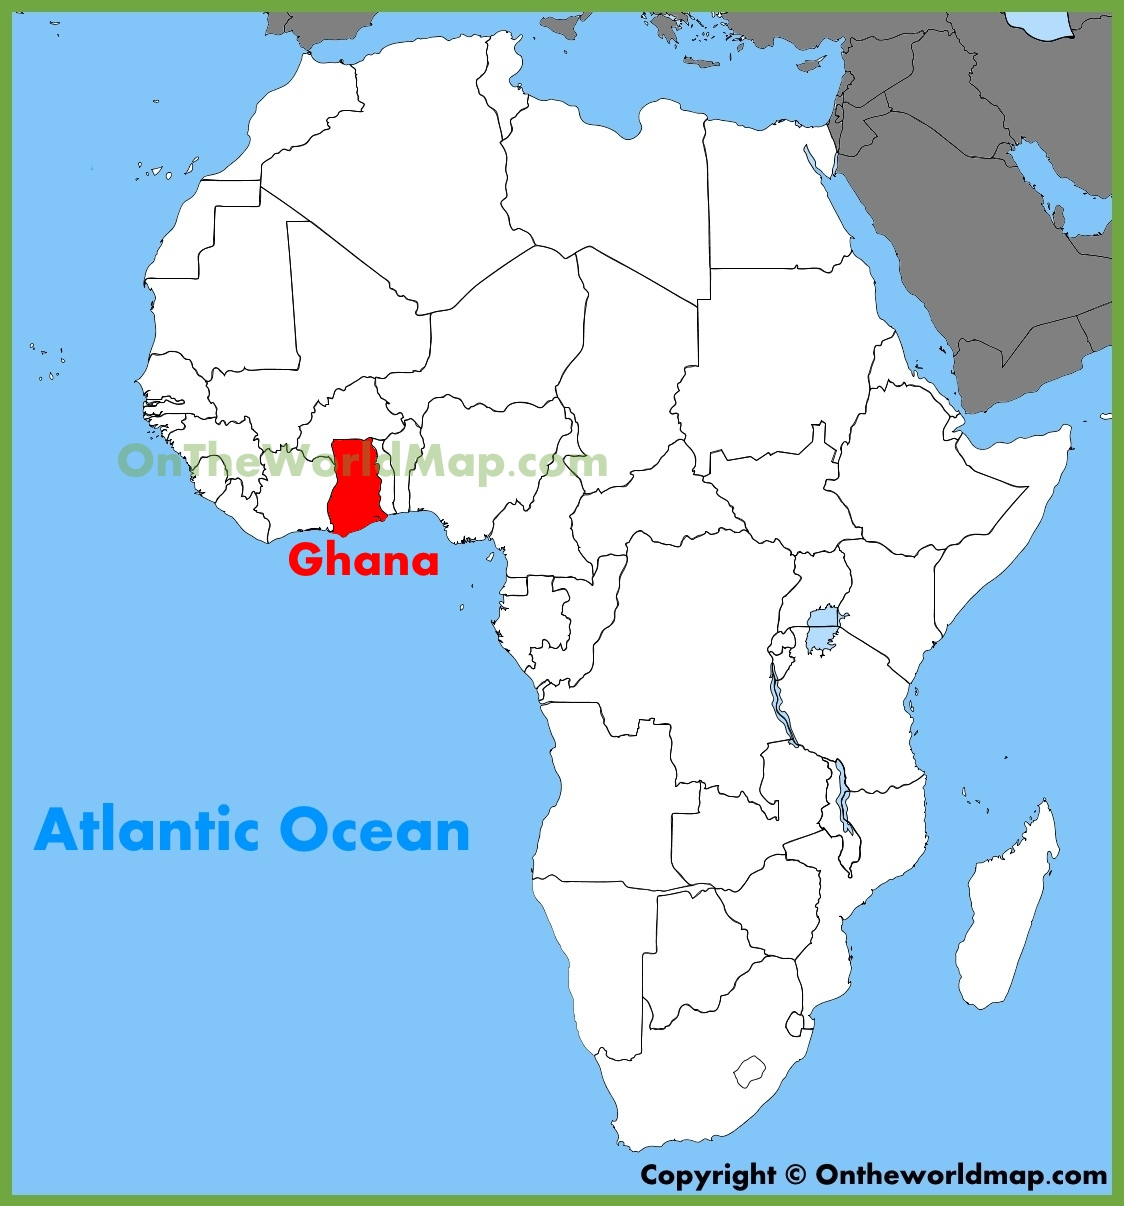 Ghana location on the Africa map